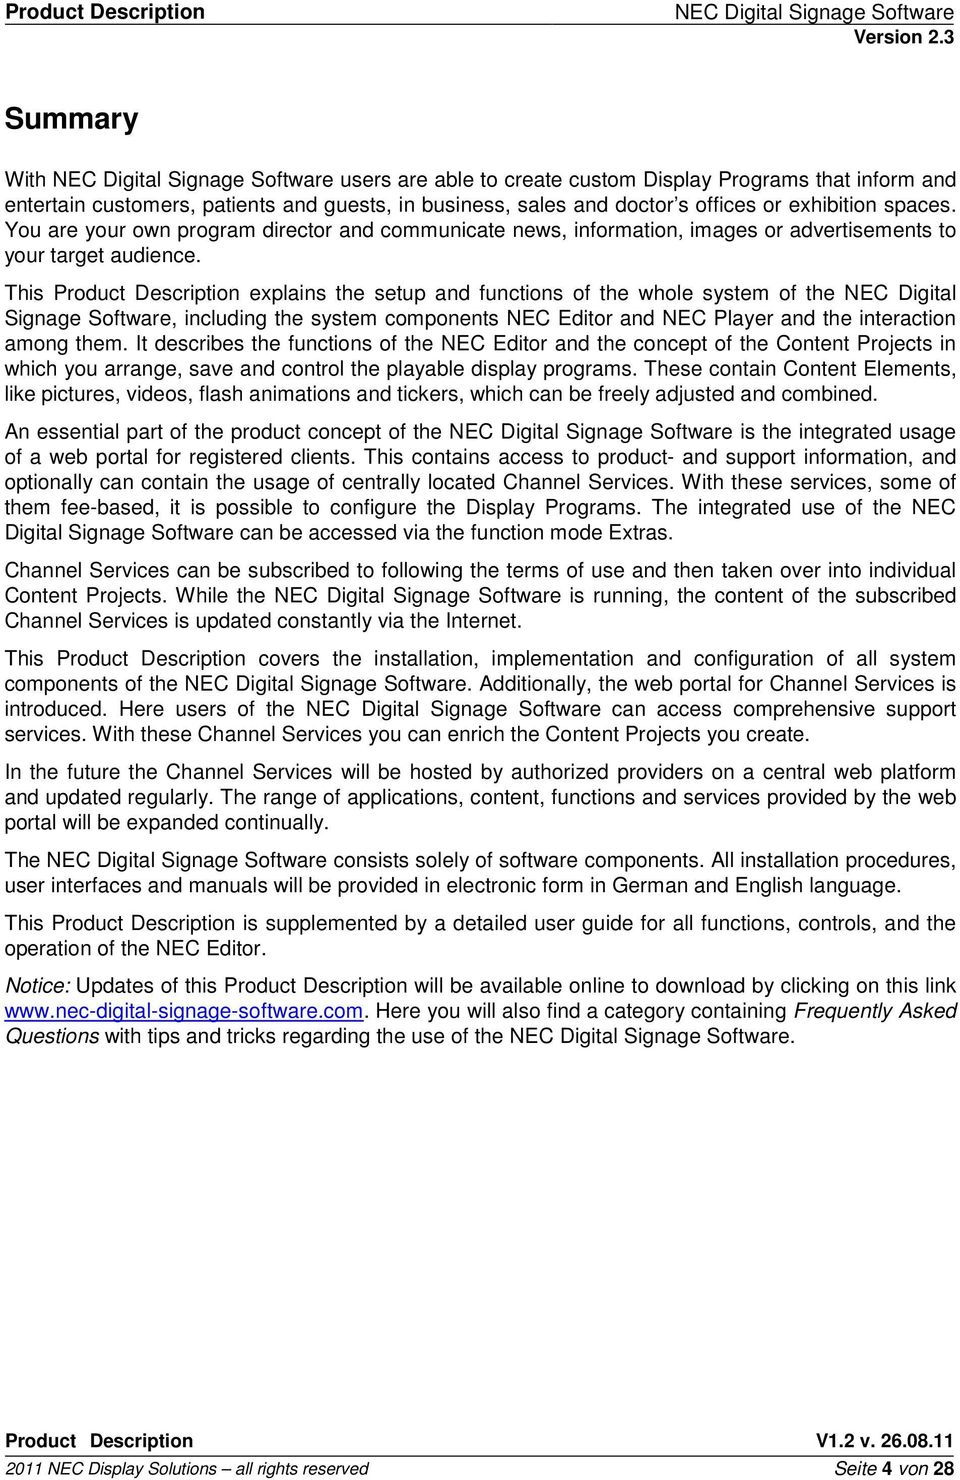 This Product Description explains the setup and functions of the whole system of the NEC Digital Signage Software, including the system components NEC Editor and NEC Player and the interaction among